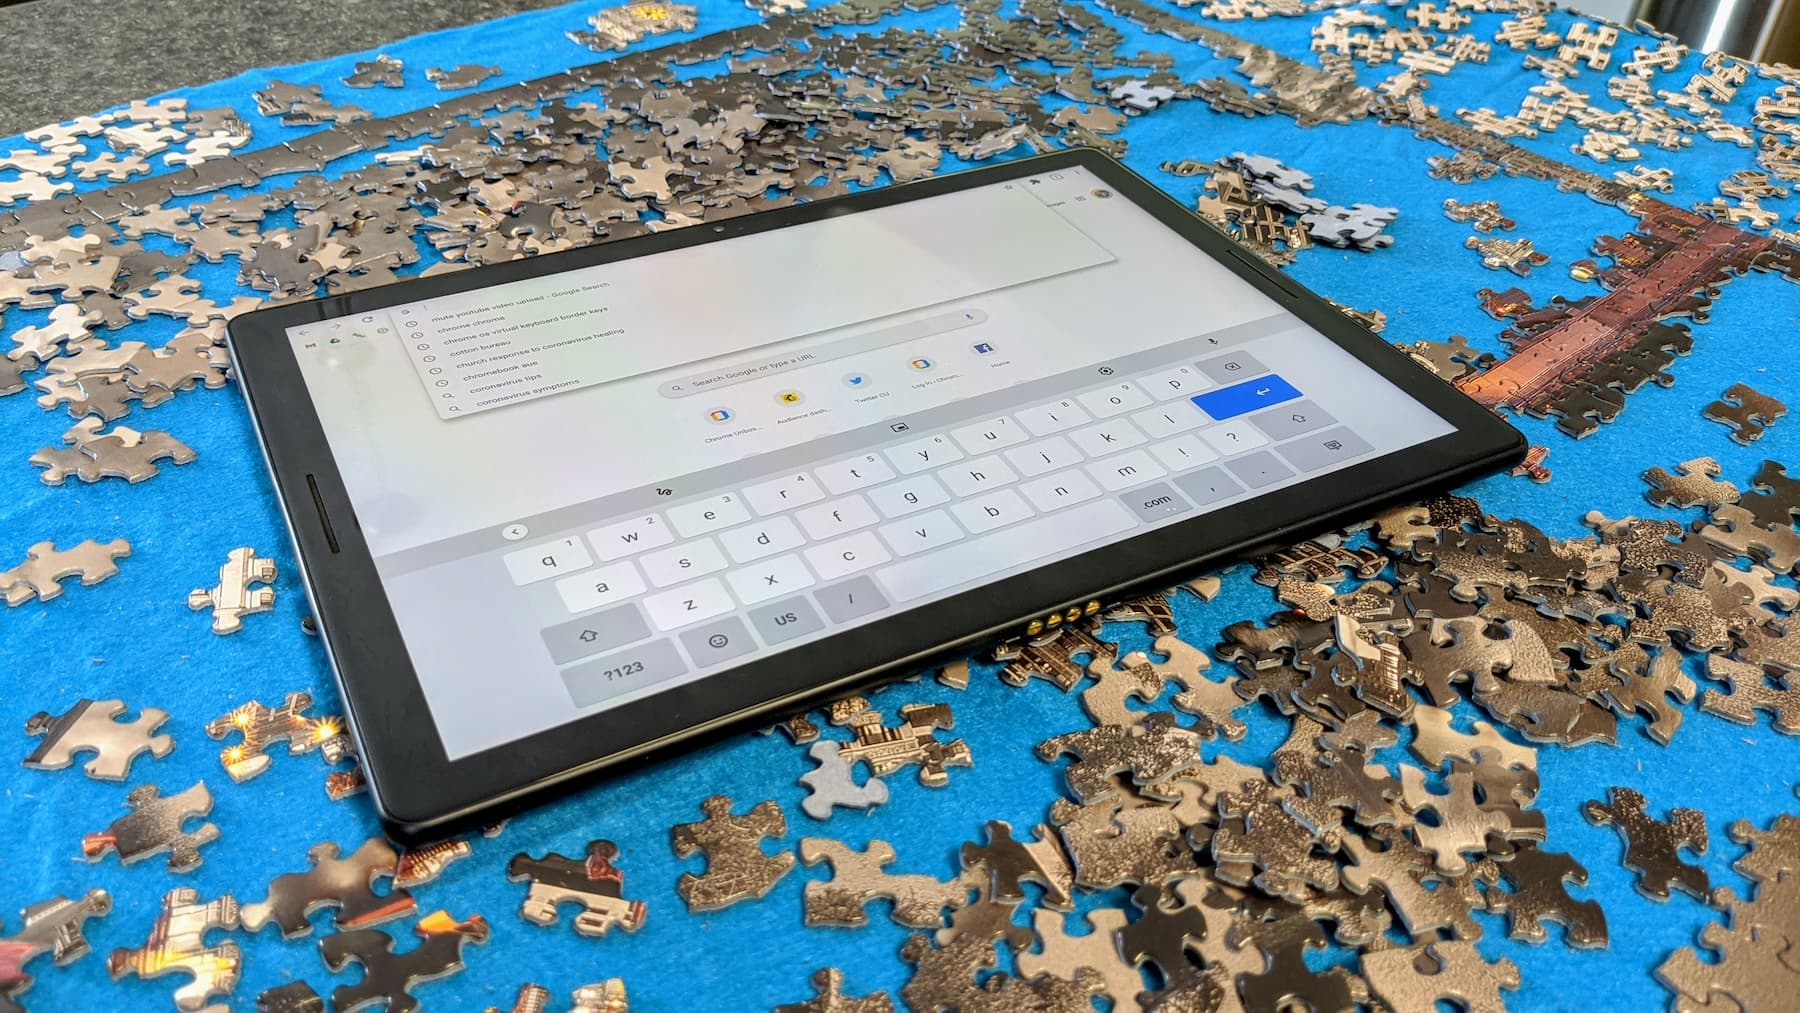 Chrome OS virtual keyboard gets a useful new feature and a new optional look